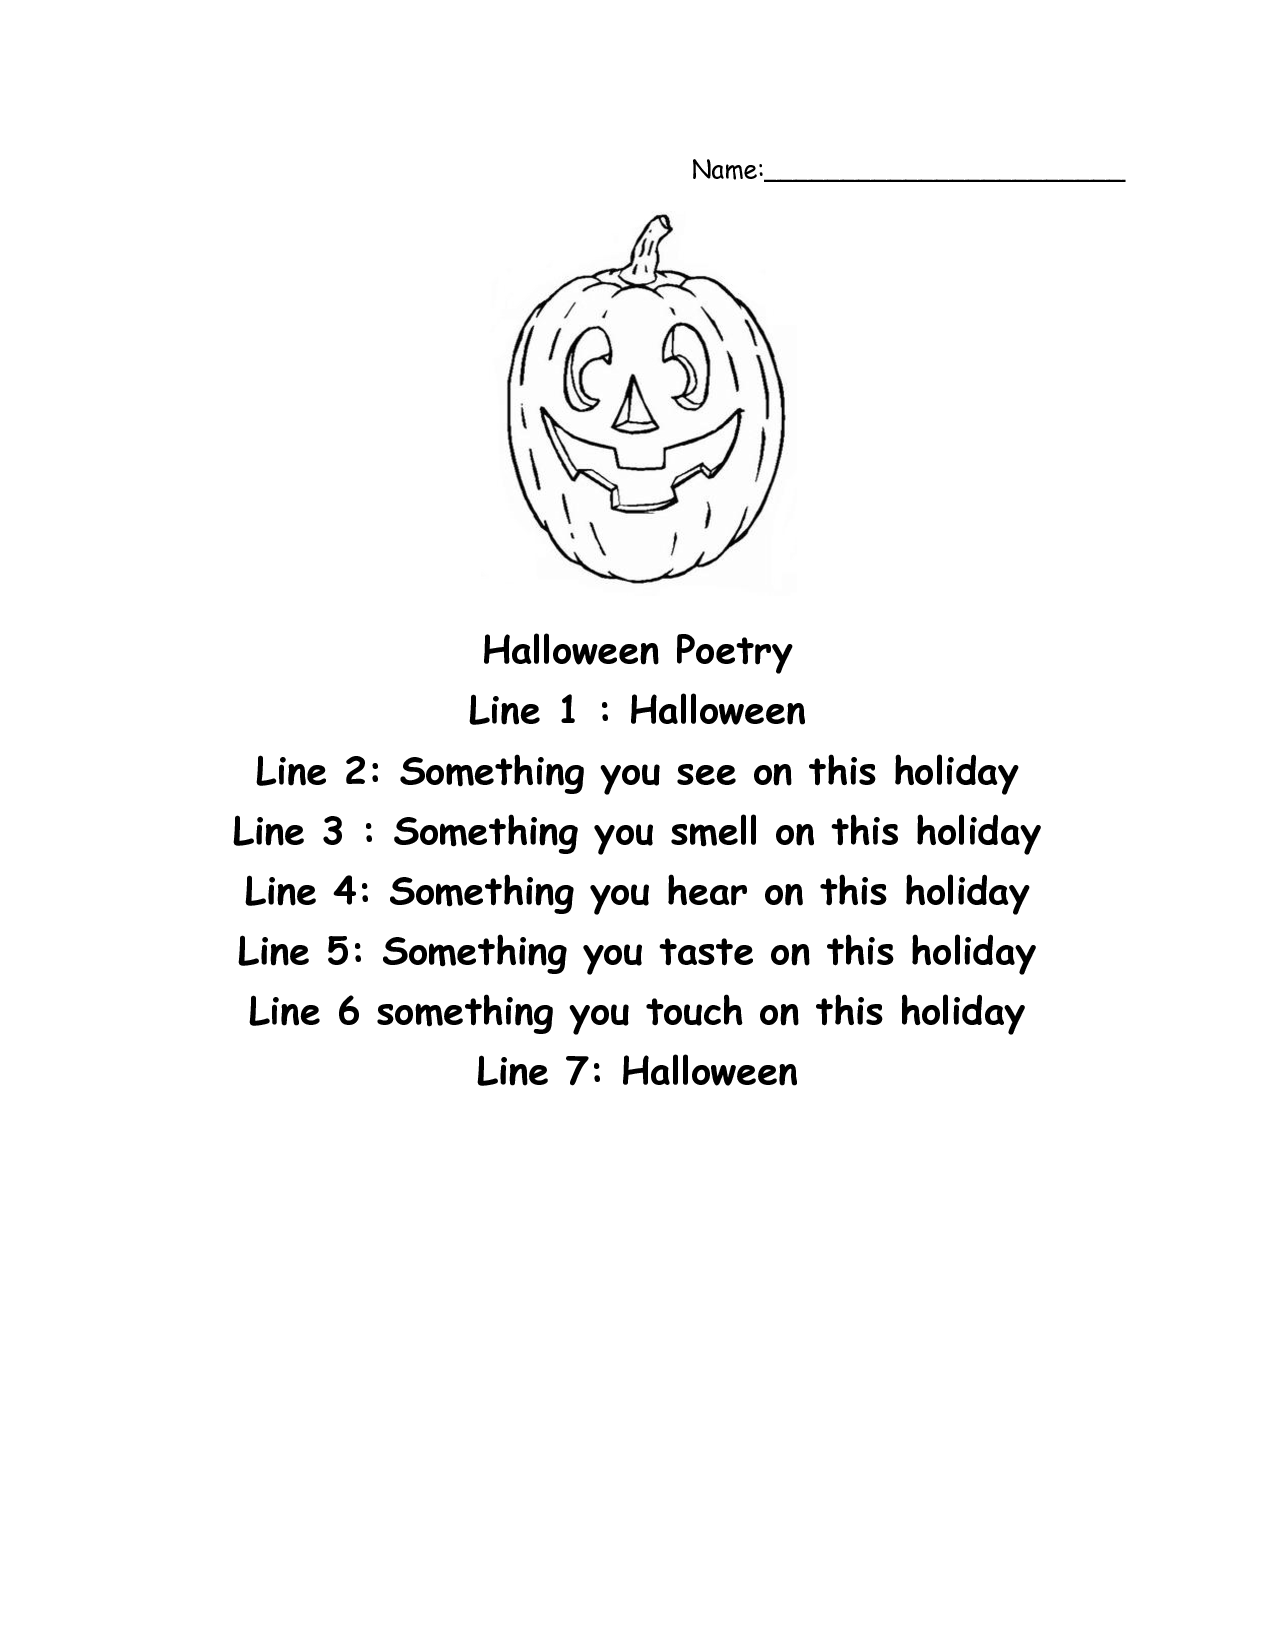 Uncategorized Halloween Poems send poetrypasta your halloween or scary poems 9688089